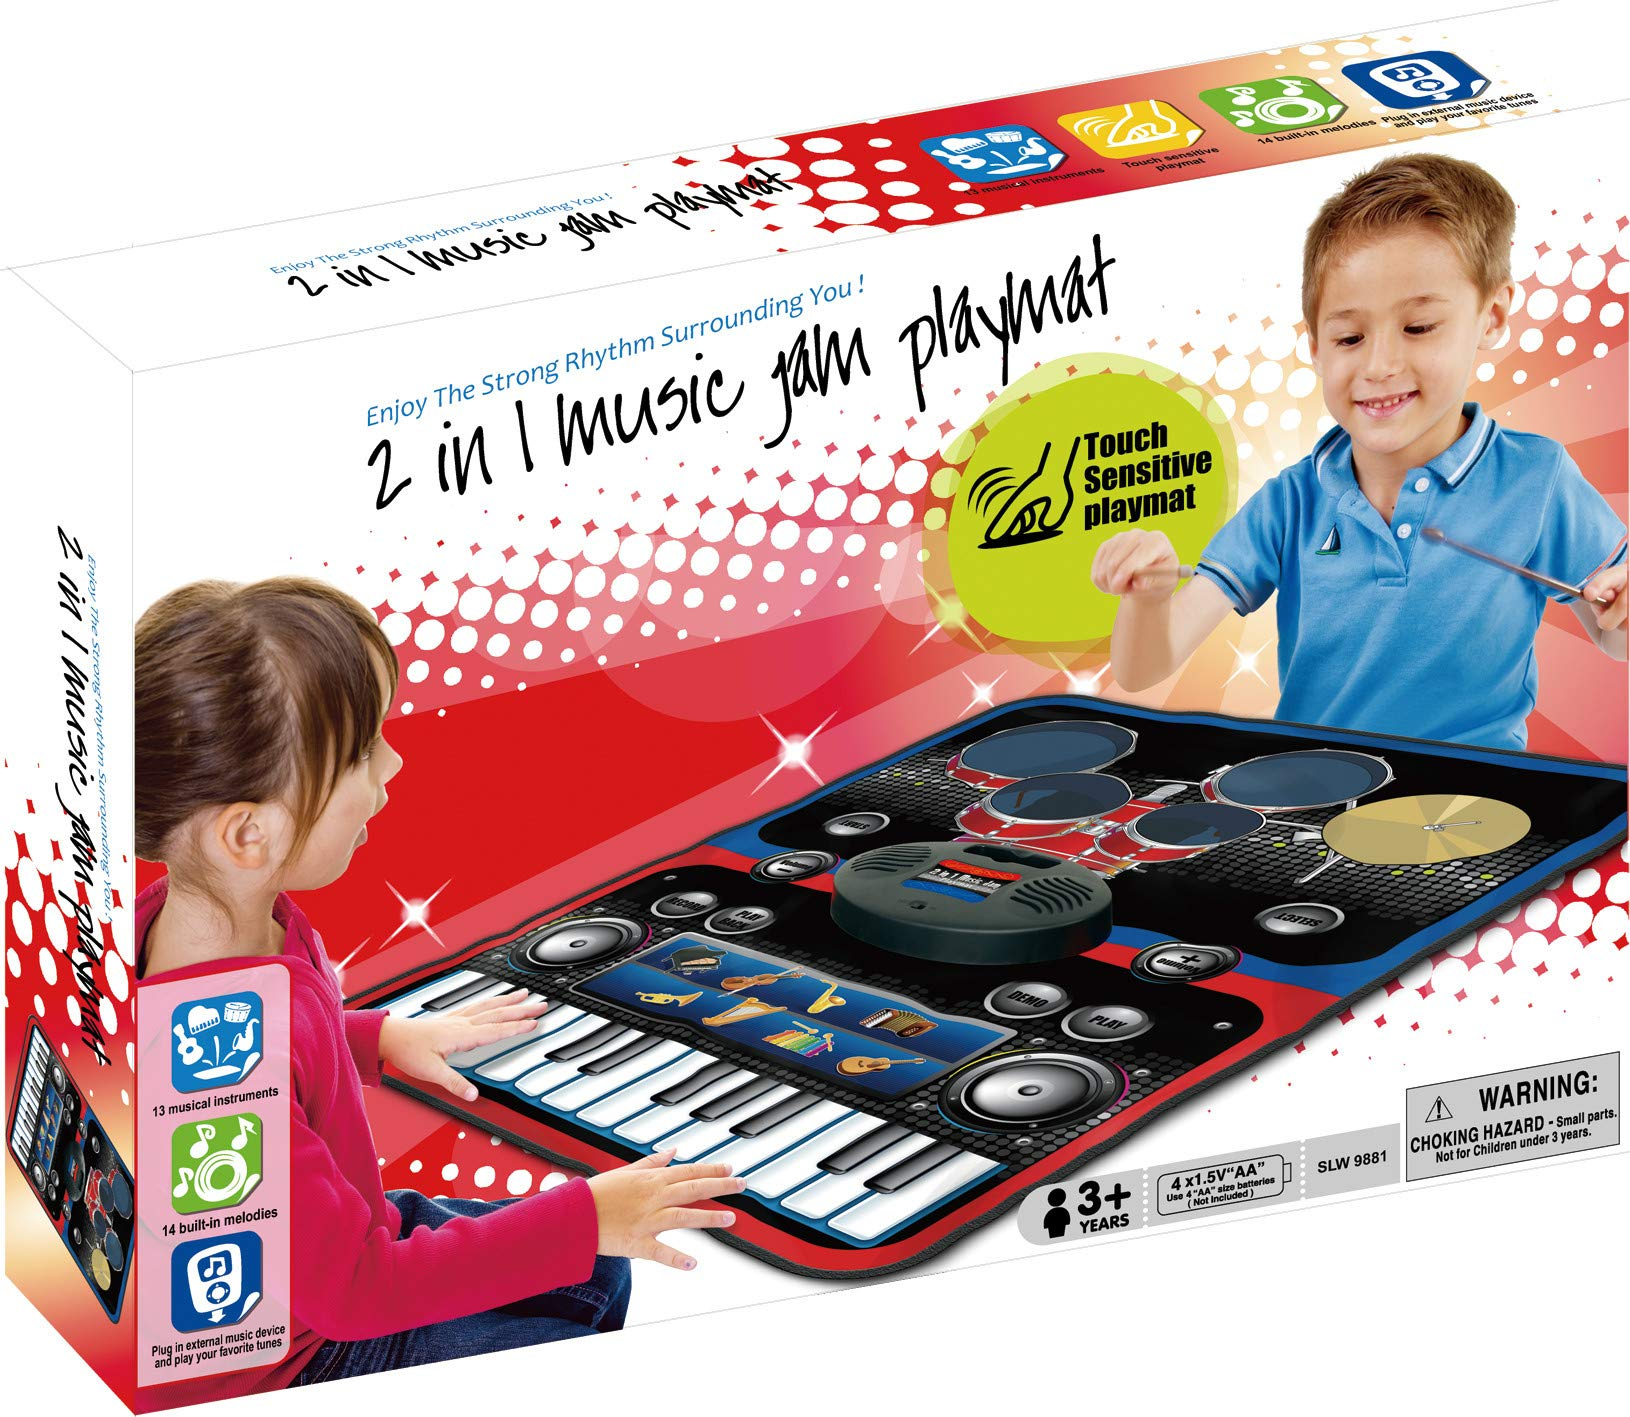 2-in-1 Functional Drum & Piano Foldable Music Mat with 5 Piece Drum, 2 Drum Sticks, 14 Demos, 24 Key Piano Keyboard with 8 Different Recordable Musical Instruments, Powerful Speakers with 3.5mm Aux Co by Toner Depot (Image #7)